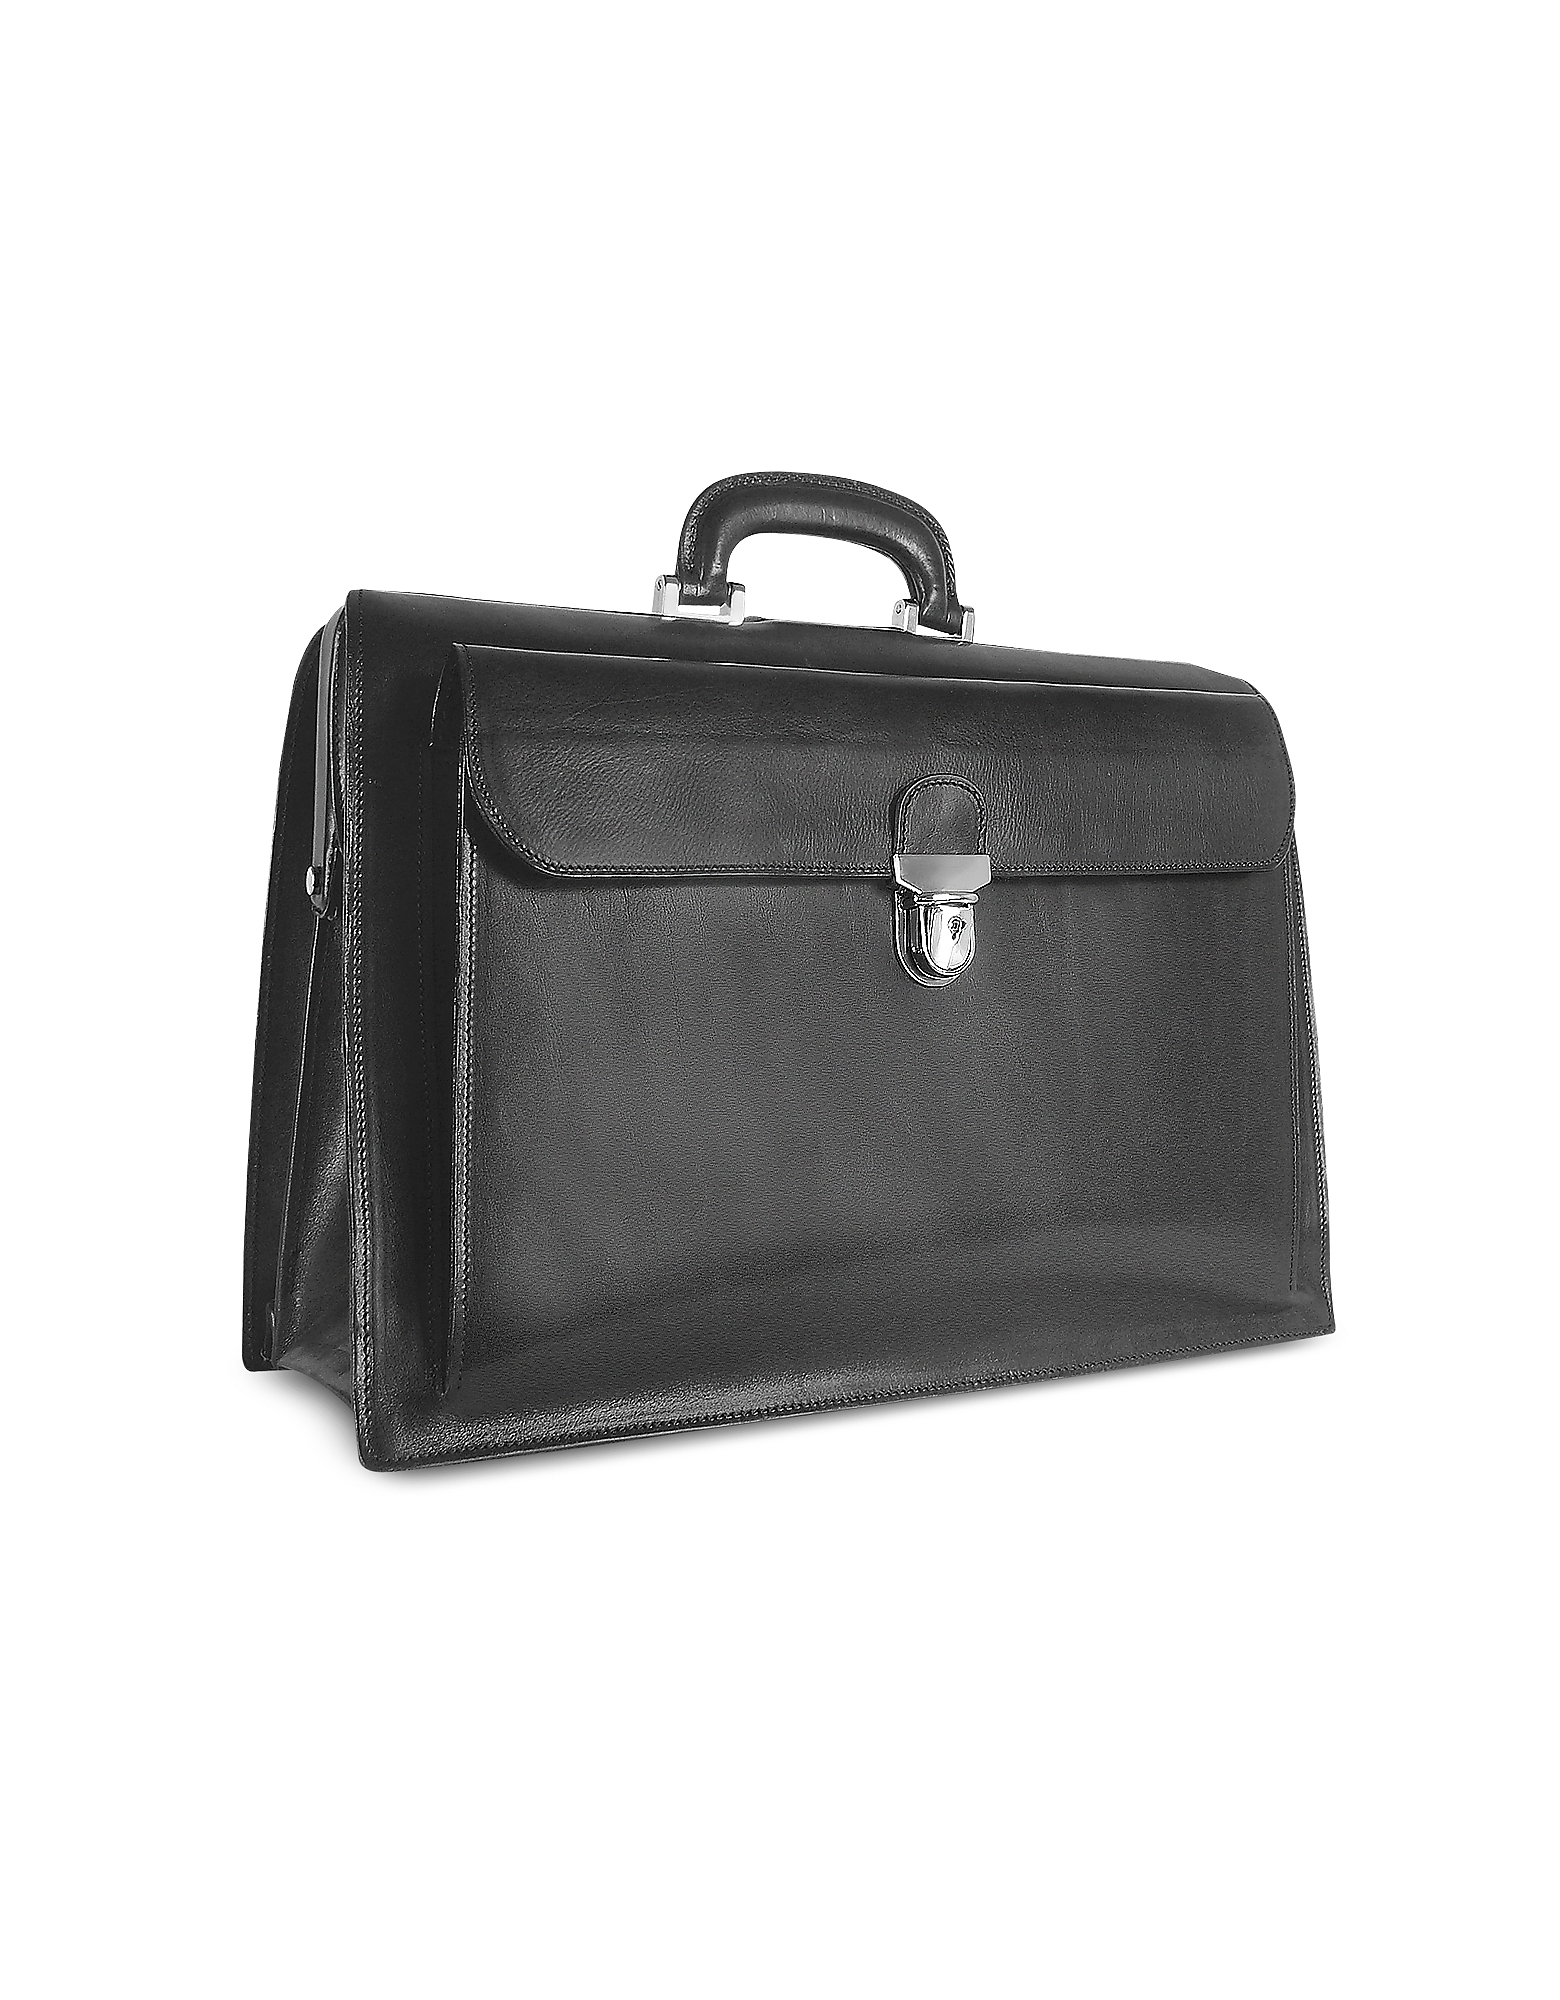 Forzieri Briefcases, Black Italian Leather Buckled Large Doctor Bag